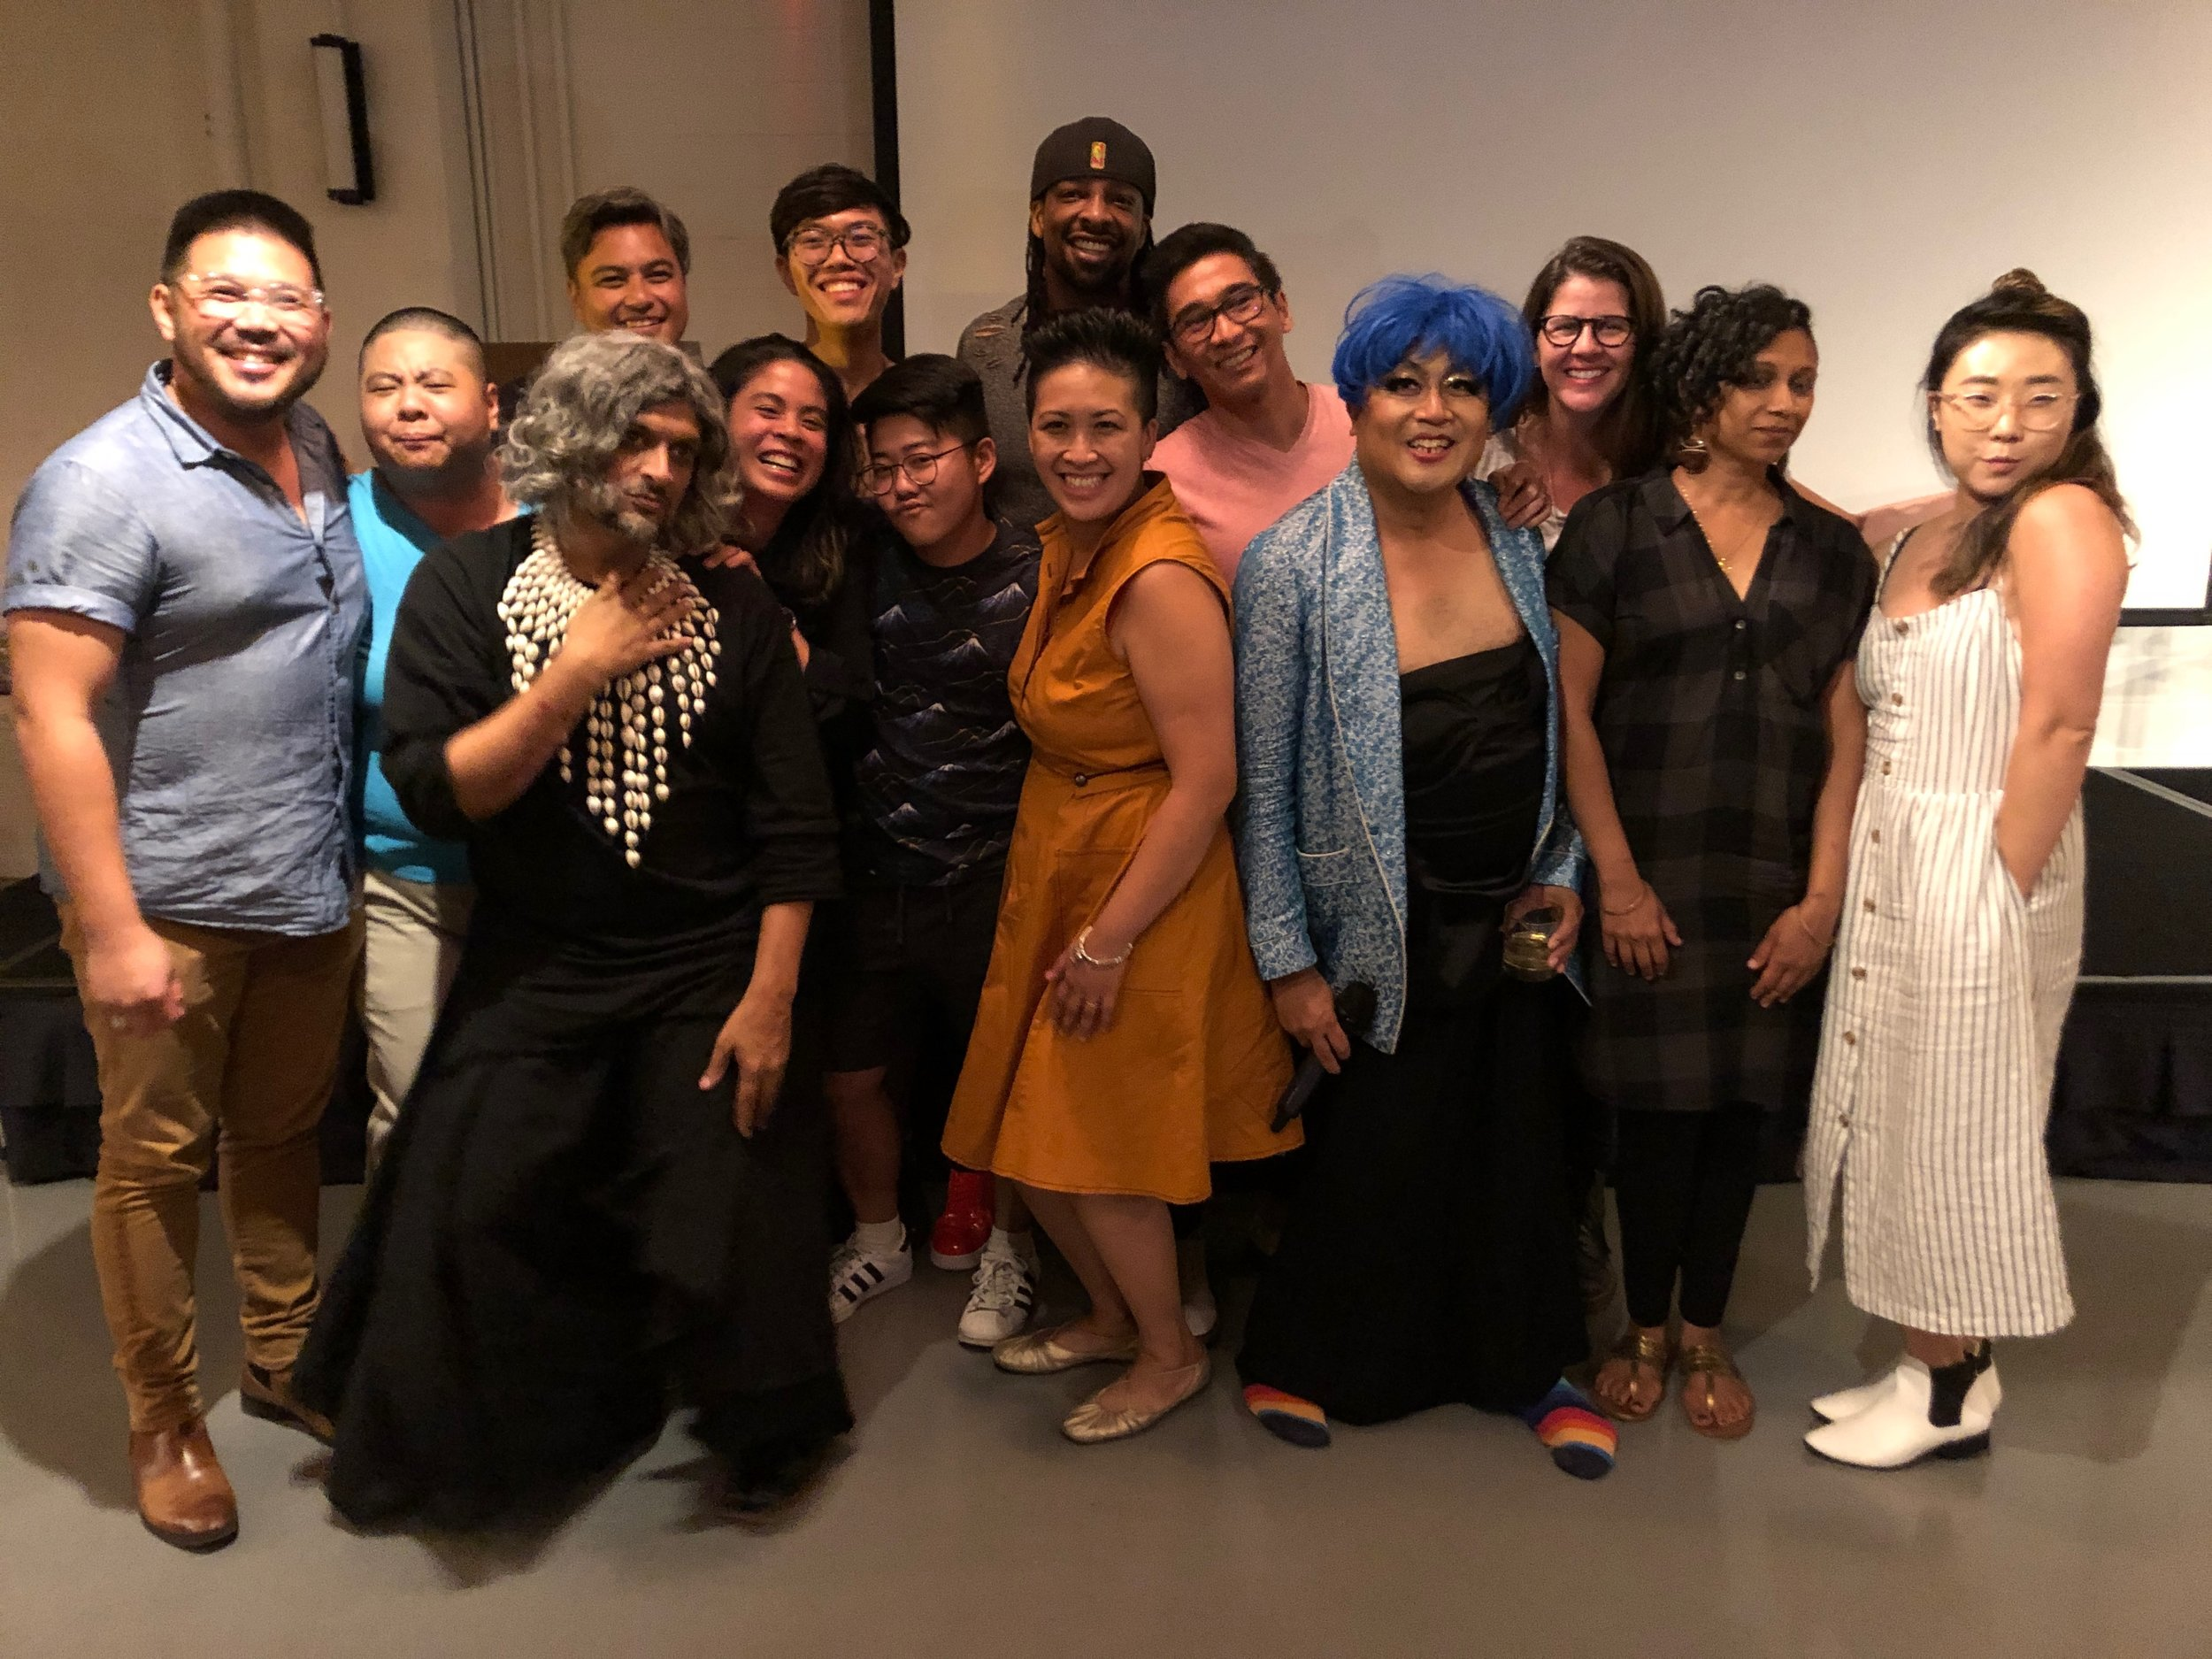 All the singer-songwriters who graced us with the gift of music at Queer Literaoke!